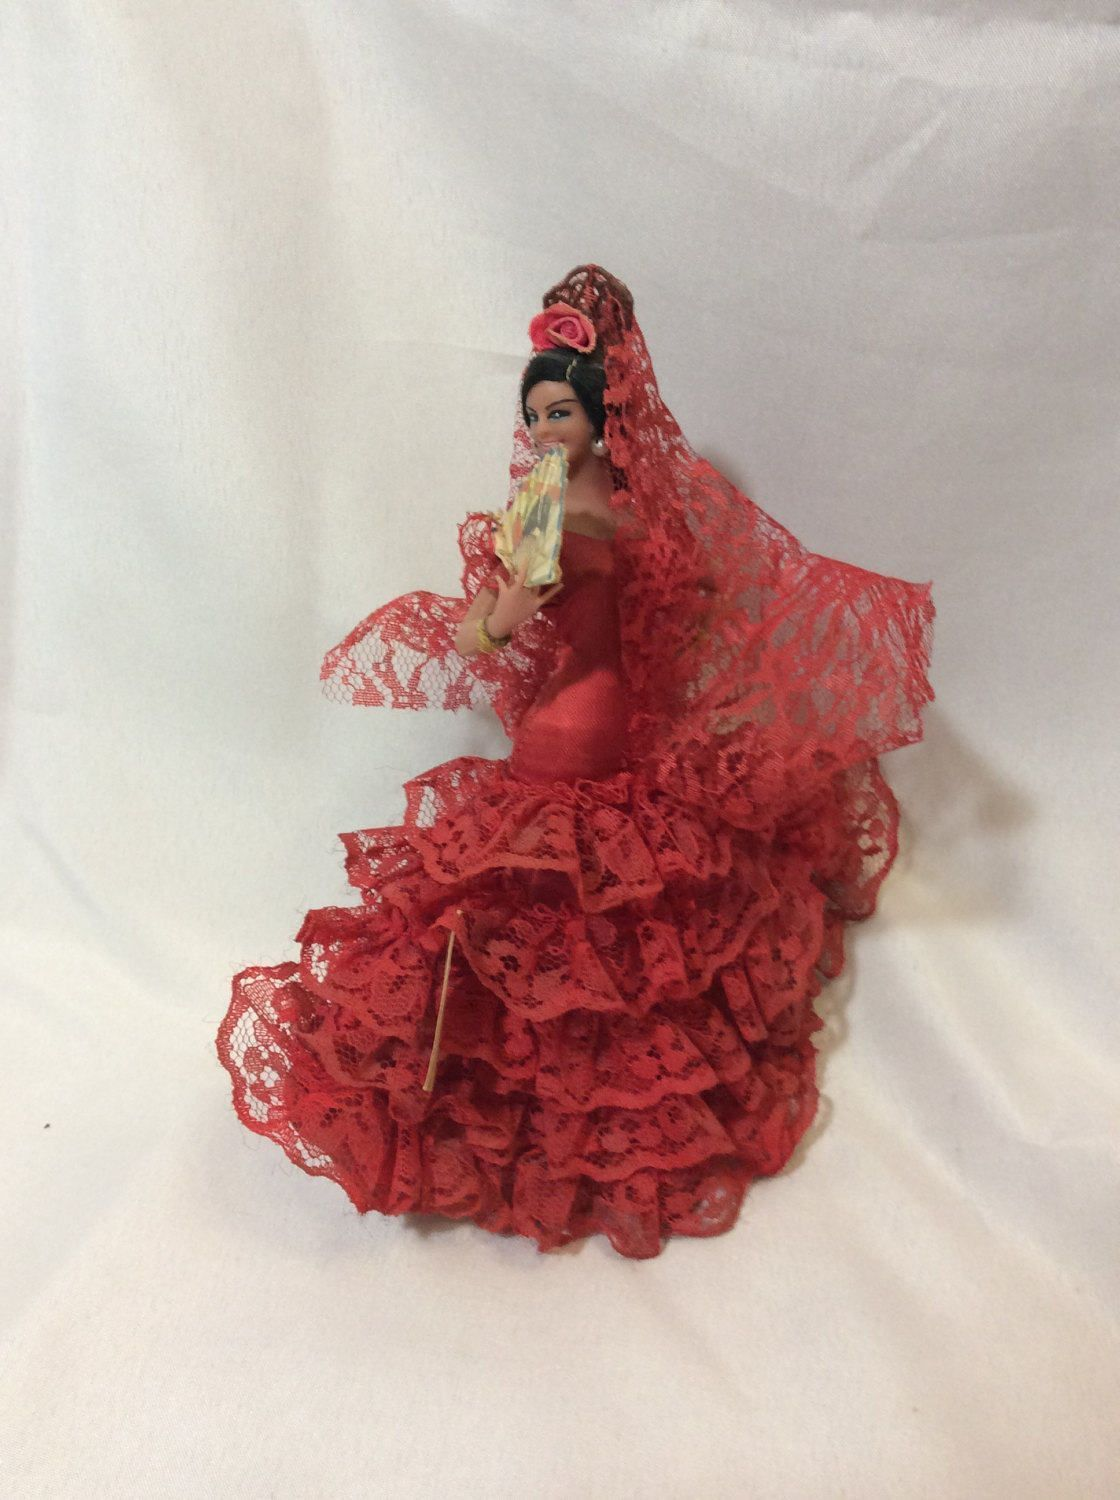 Marin Chiclana doll, flamenco dancer doll from Spain, Vintage Marin Chiclana Senorita, 1970's Spanish doll, doll collectors by NothingsNewHere on Etsy #spanishdolls Marin Chiclana doll, flamenco dancer doll from Spain, Vintage Marin Chiclana Senorita, 1970's Spanish doll, doll collectors by NothingsNewHere on Etsy #spanishdolls Marin Chiclana doll, flamenco dancer doll from Spain, Vintage Marin Chiclana Senorita, 1970's Spanish doll, doll collectors by NothingsNewHere on Etsy #spanishdolls Marin #spanishdolls